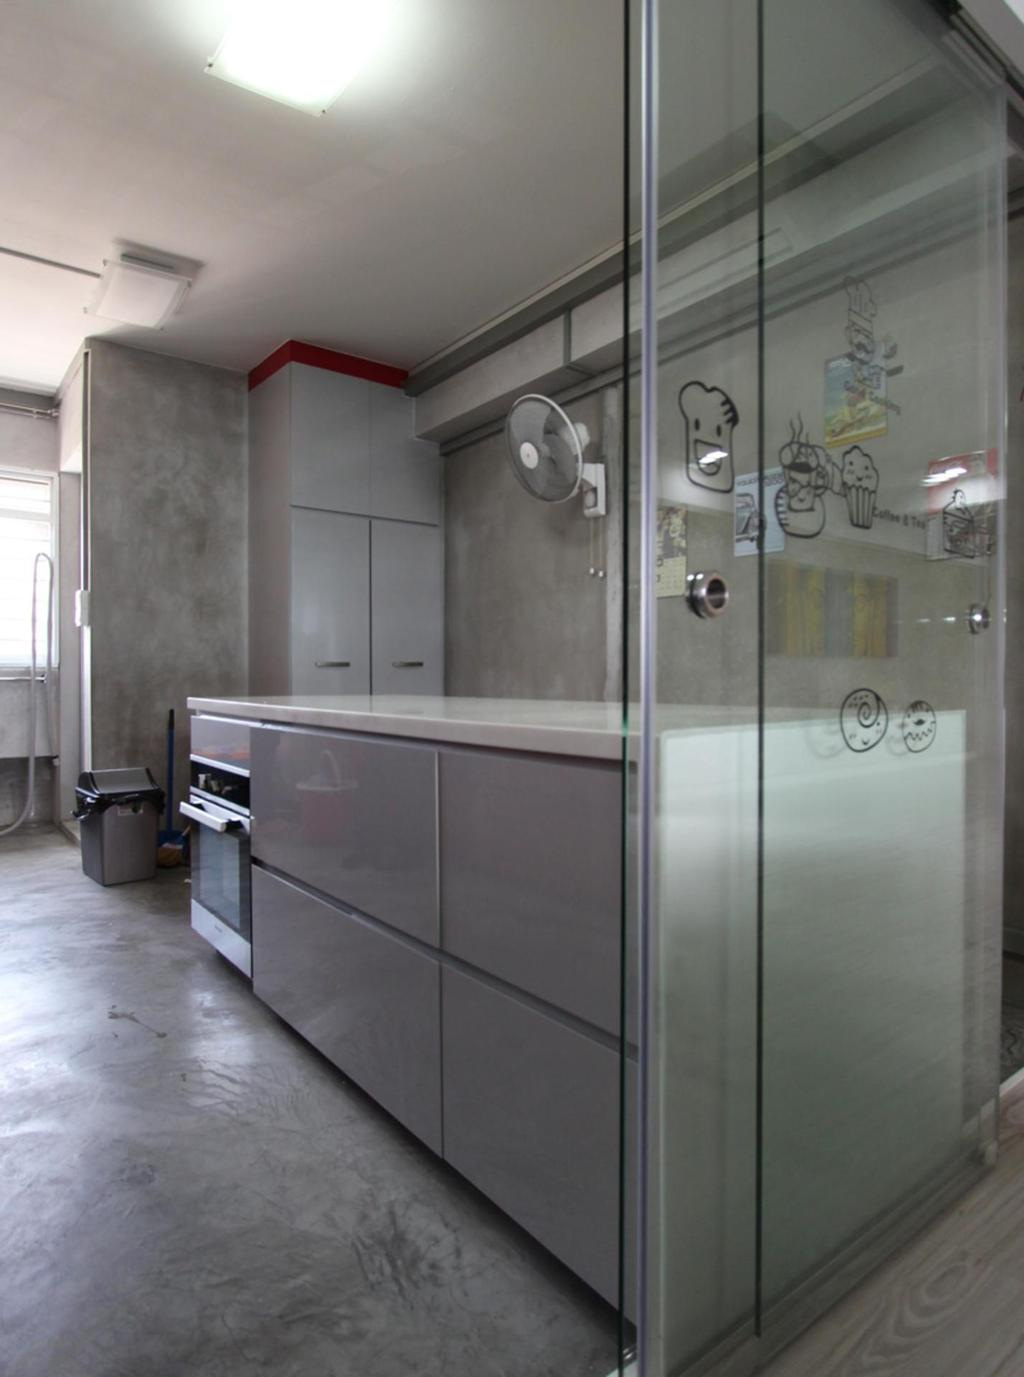 Traditional, HDB, Kitchen, Pasir Ris (Block 642), Interior Designer, Ingenious Design Solutions, Gray, White, Laminate, Glossy, Glass Wall, Glass Sliding Doors, Doors, Sliding Doors, Cement Flooring, Kitchen Counter, Appliance, Electrical Device, Oven